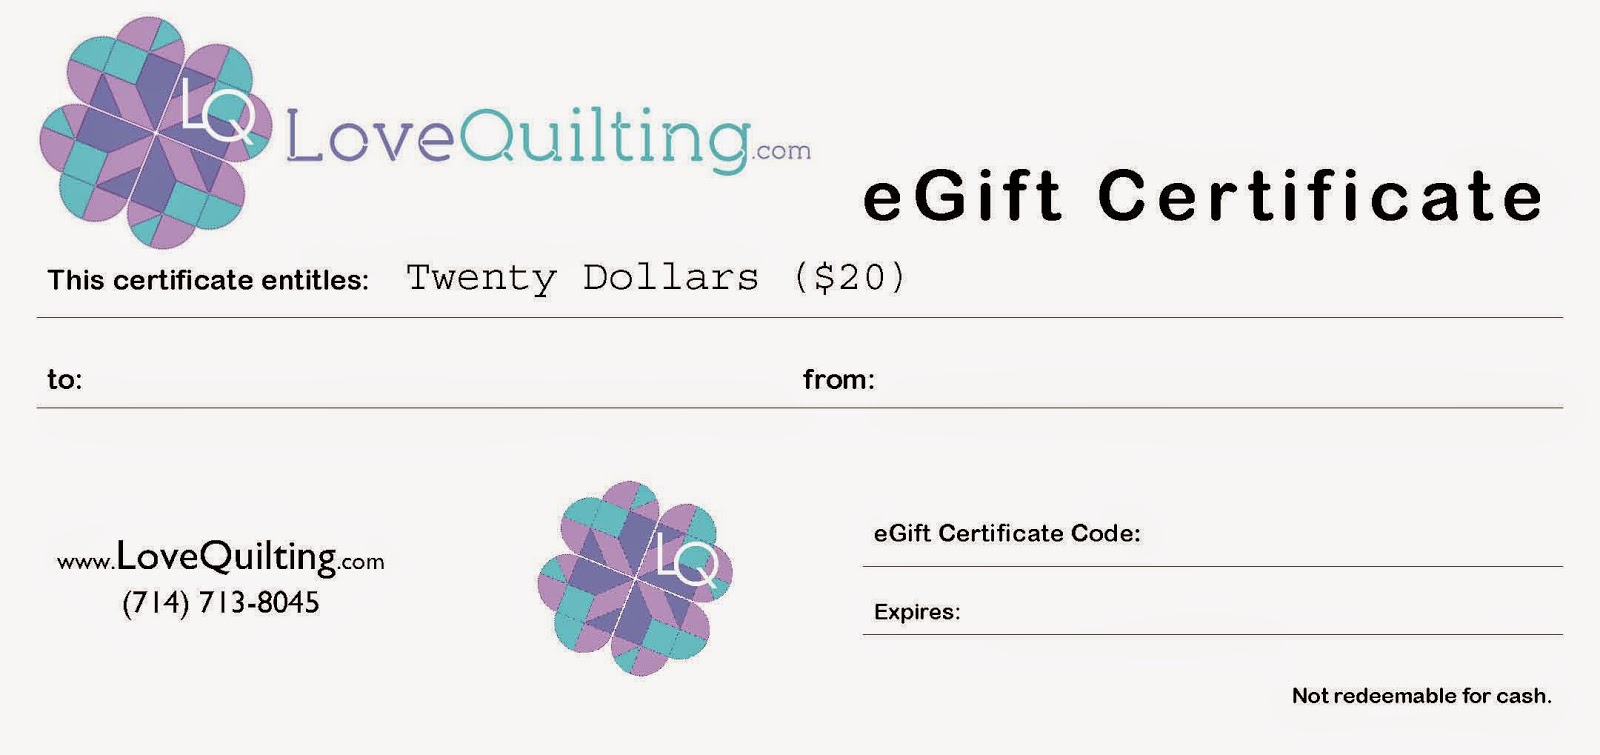 http://www.lovequilting.com/shop/accessories/20-egift-certificate/